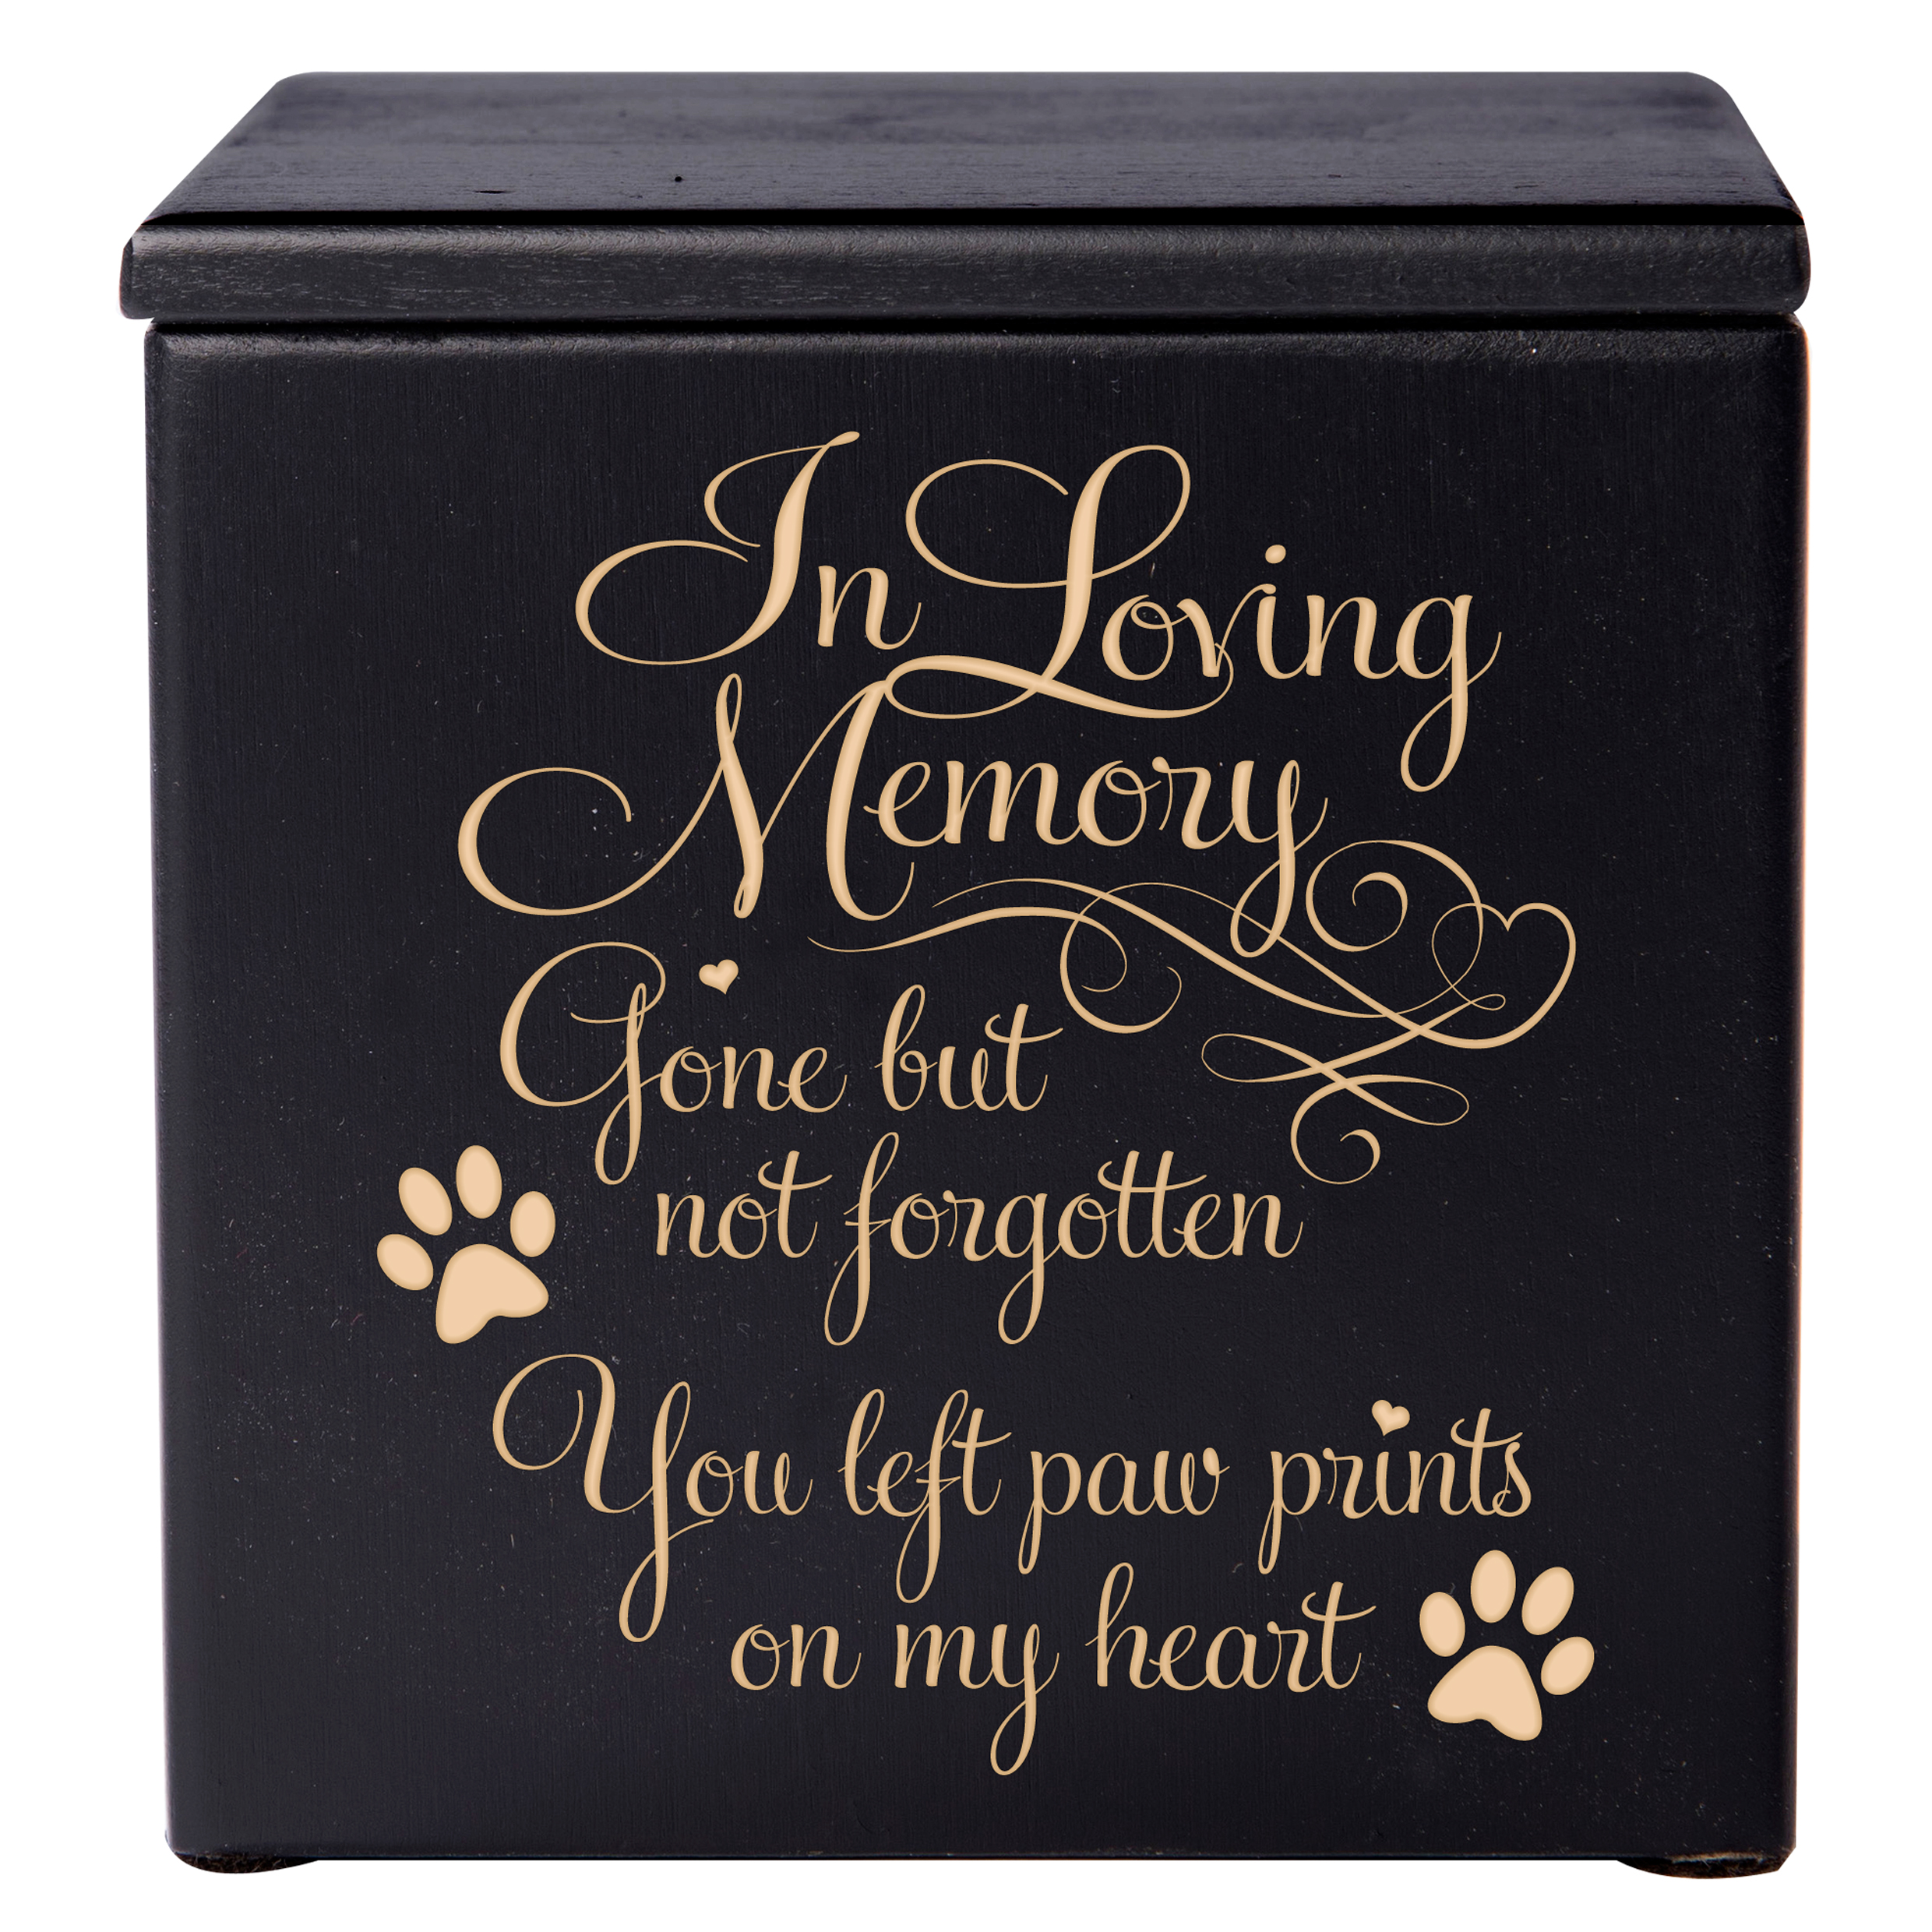 Pet Cremation Urn - In Loving Memory Gone But Not Forgotten You Left Pawprints On My Heart - Small (Black)